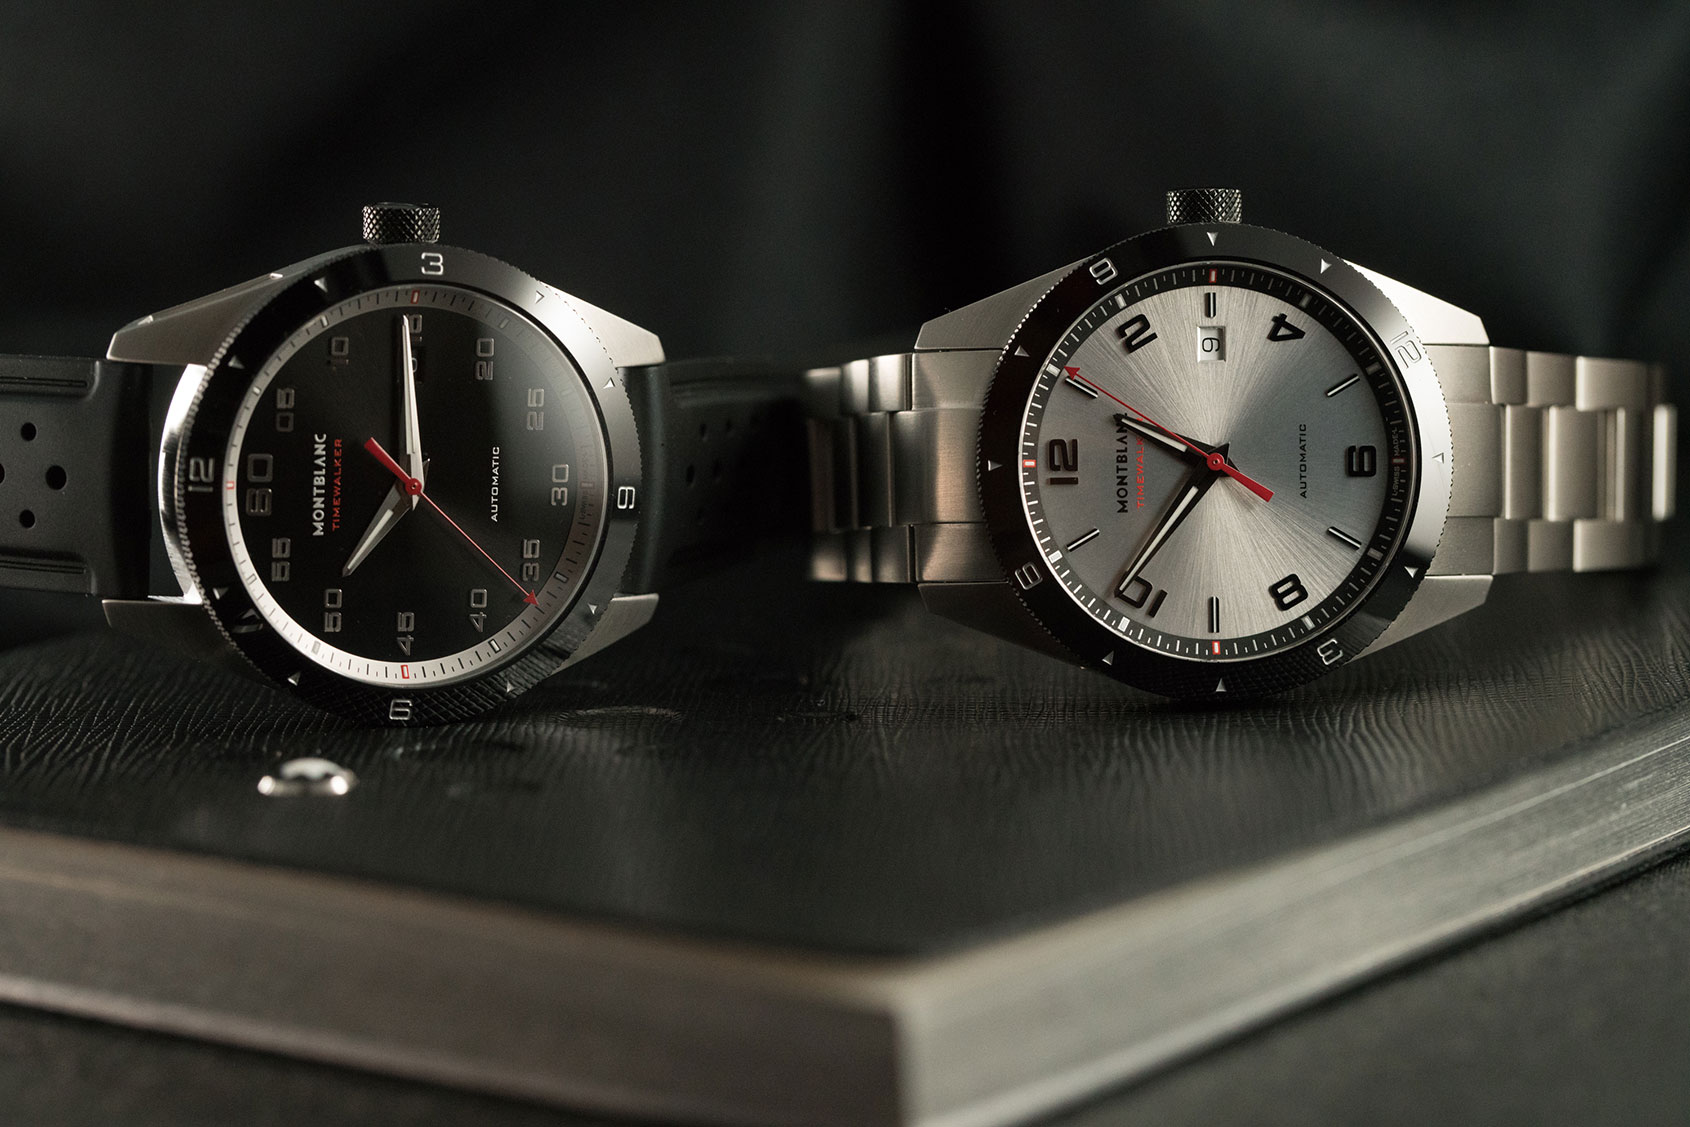 INTRODUCING: Sporty but simple – the Montblanc TimeWalker Date Automatic